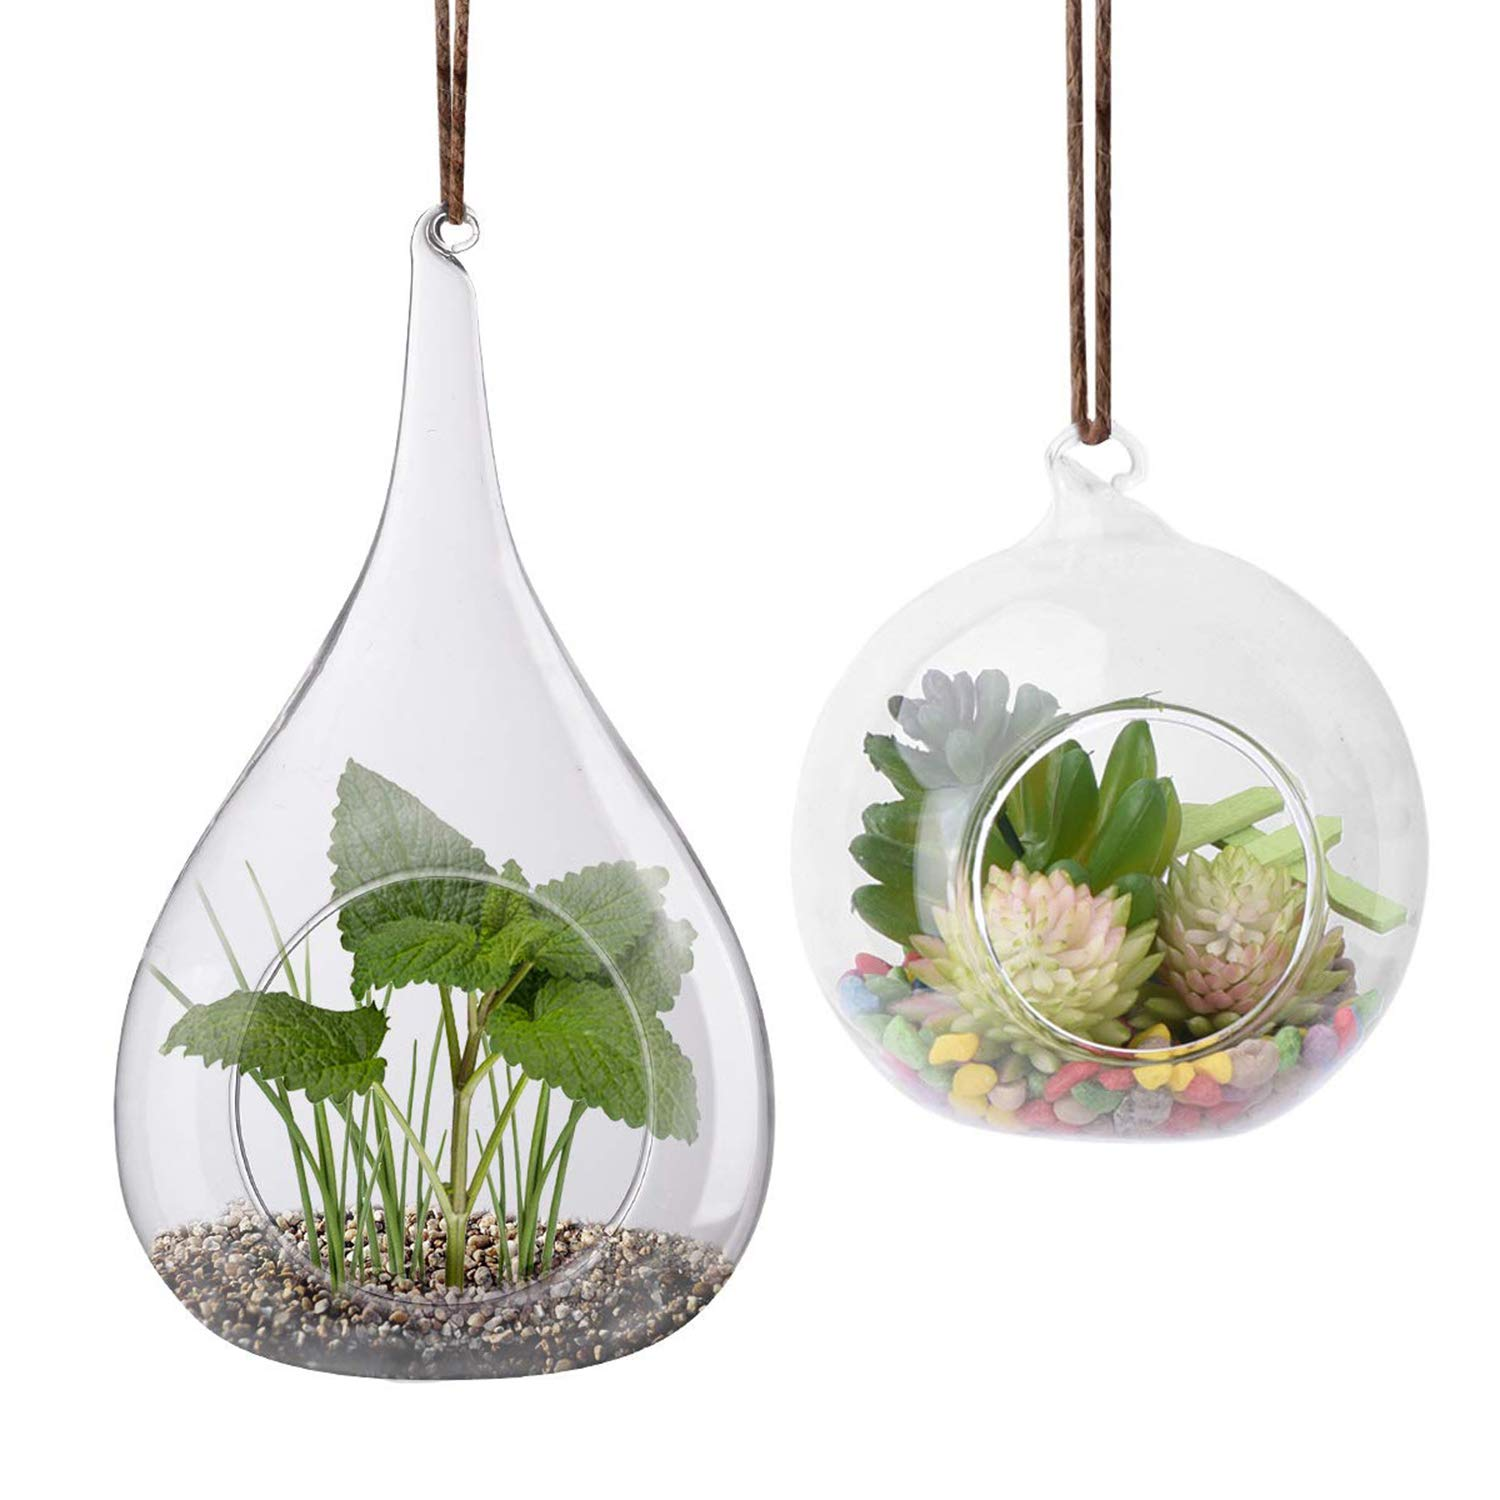 2 Pack Glass Hanging Planter Hanging Air Plant Terrarium Pots Heat-Resistant Glass for Succulent Fern Terrace Candle Holder, Garden/Home Decor